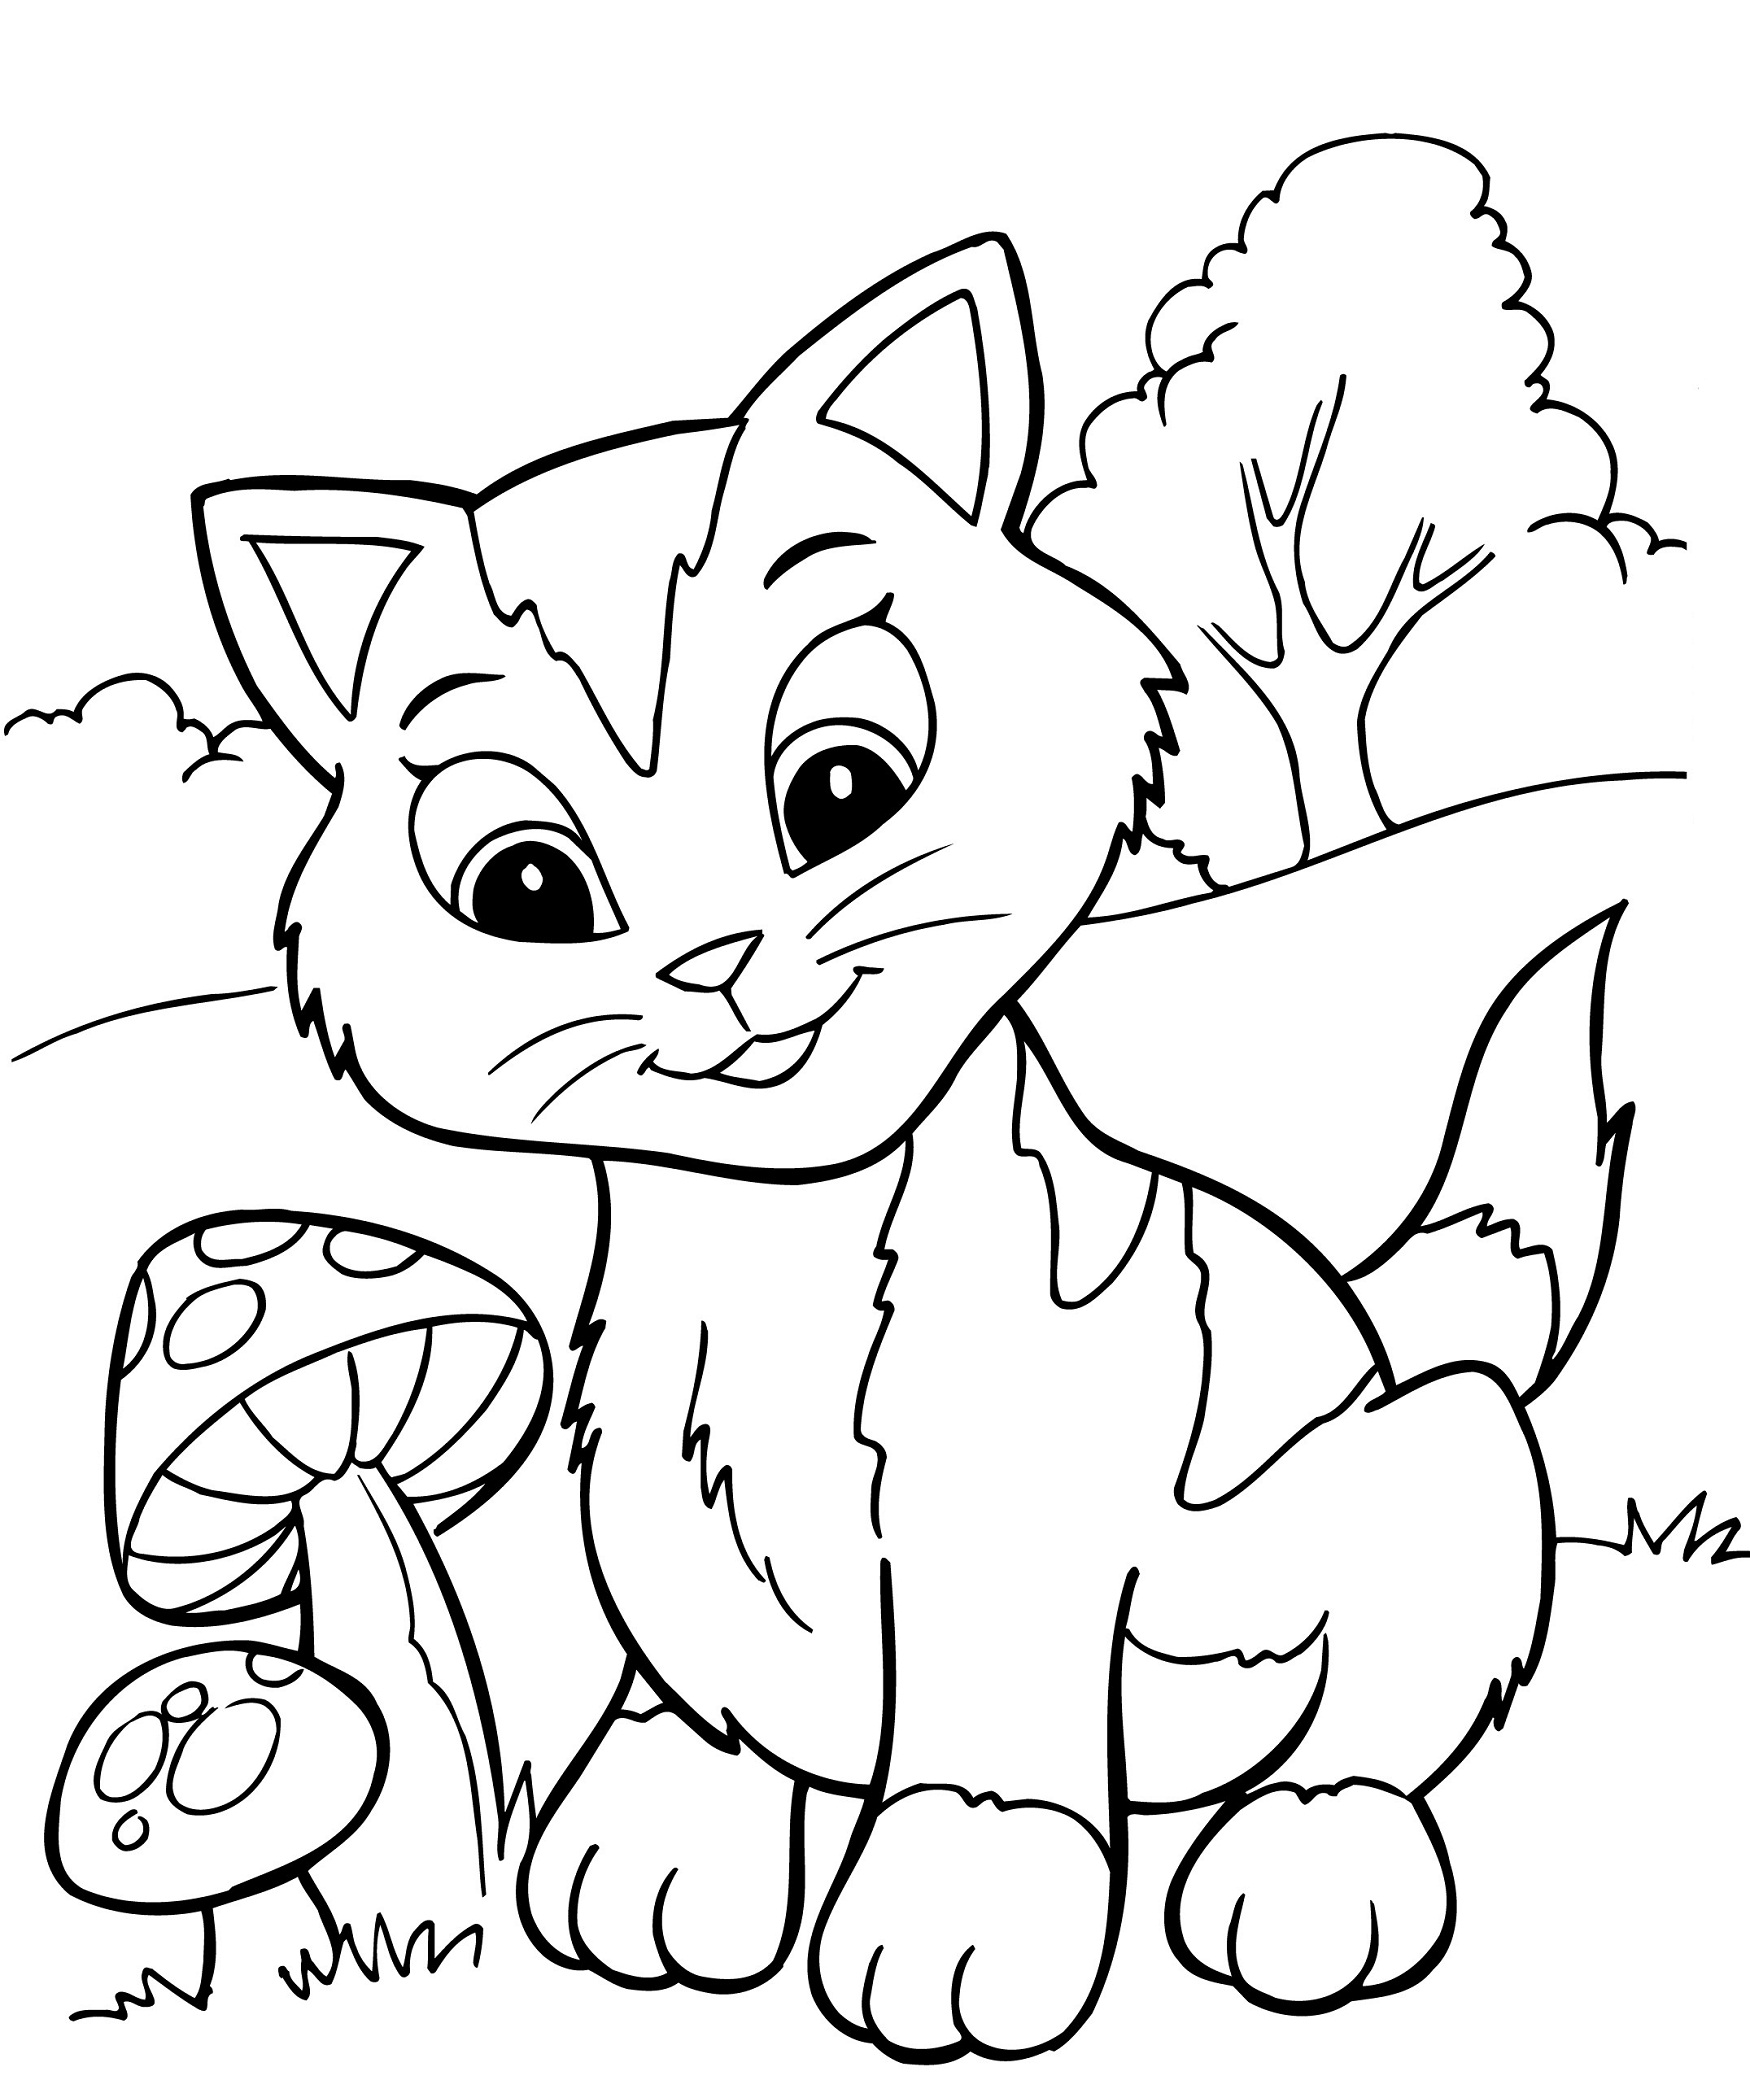 colouring pages of cats free printable kitten coloring pages for kids best of pages colouring cats